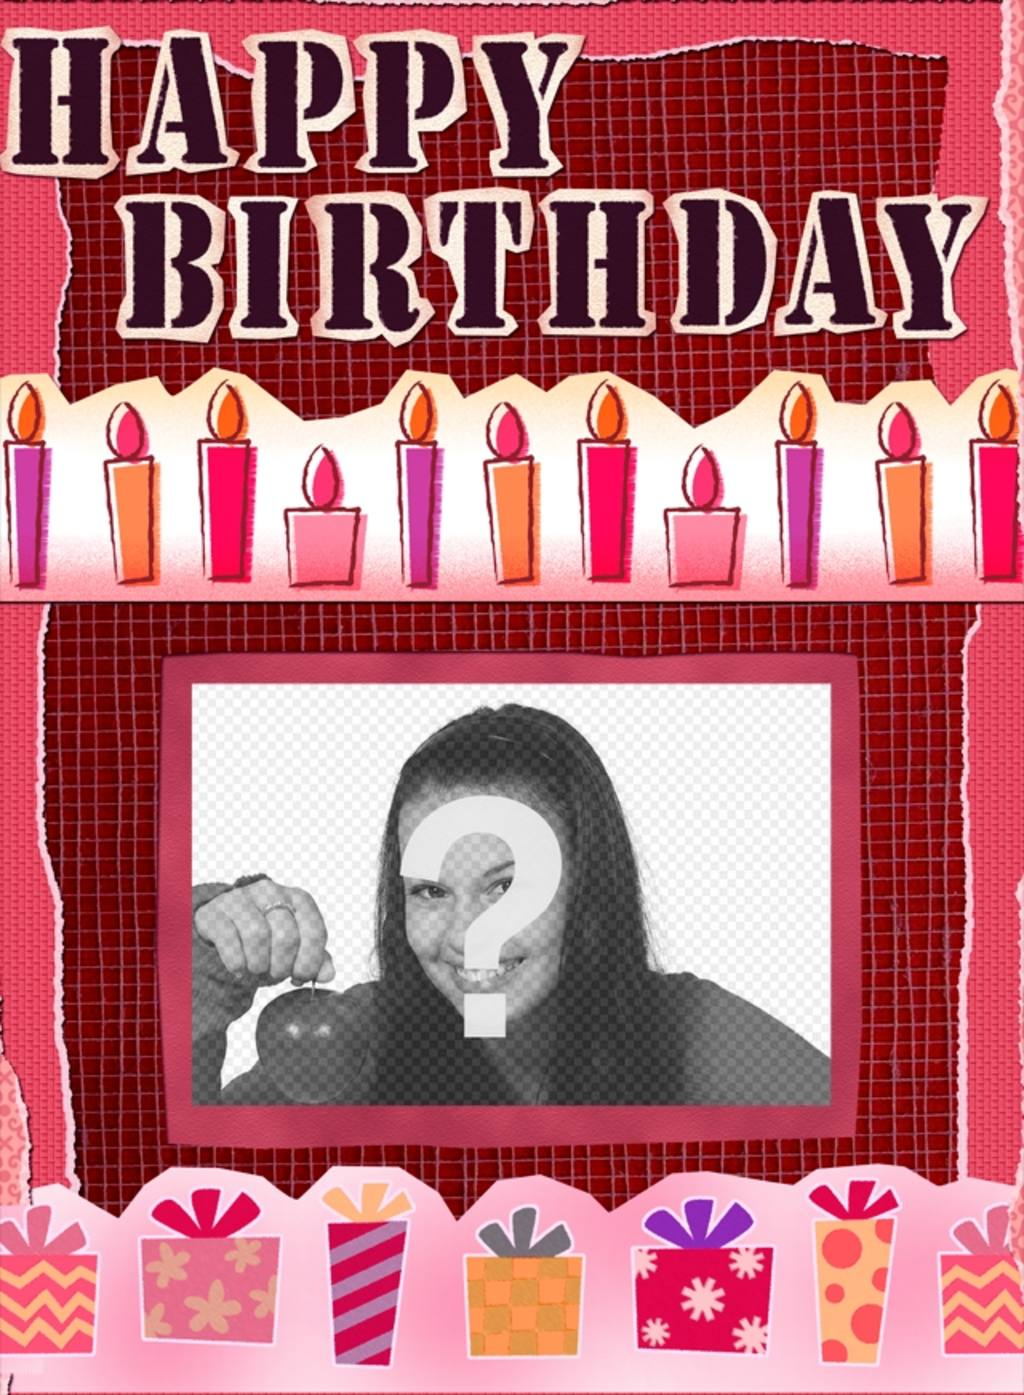 Birthday Card To Make Online And Add A Photo At Background